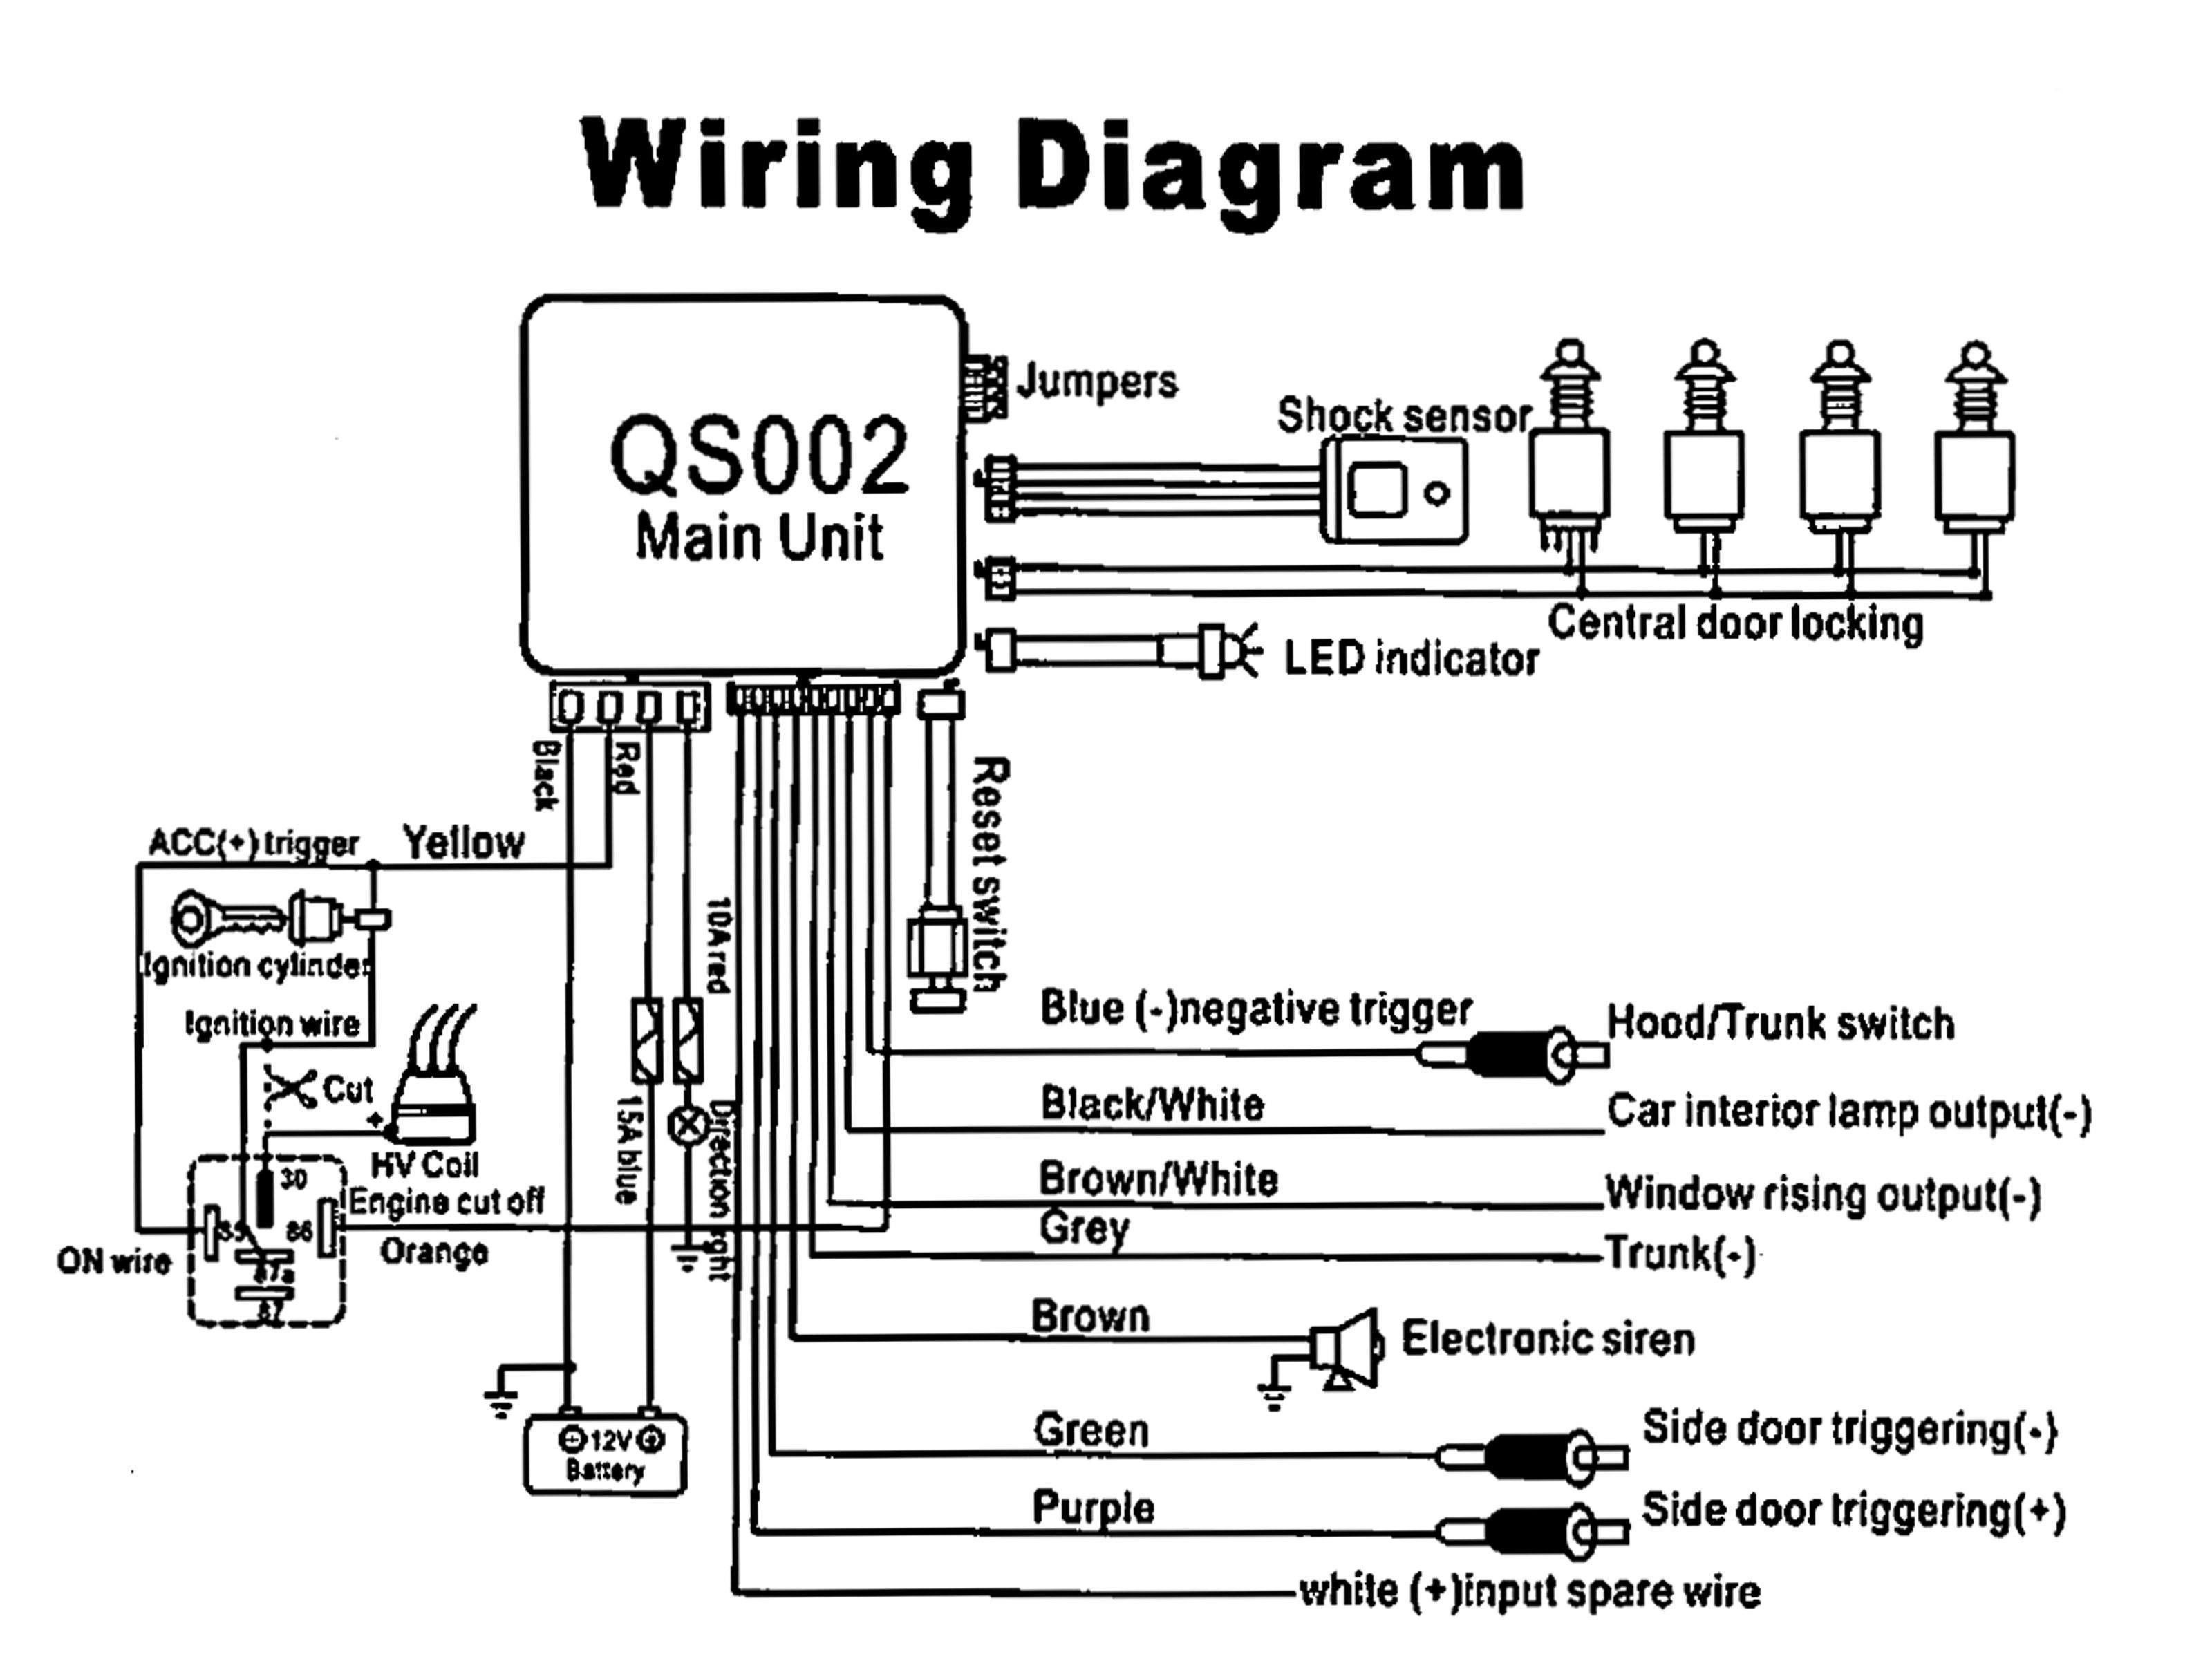 Inspirational Vehicle Wiring Diagram App #diagrams ... on